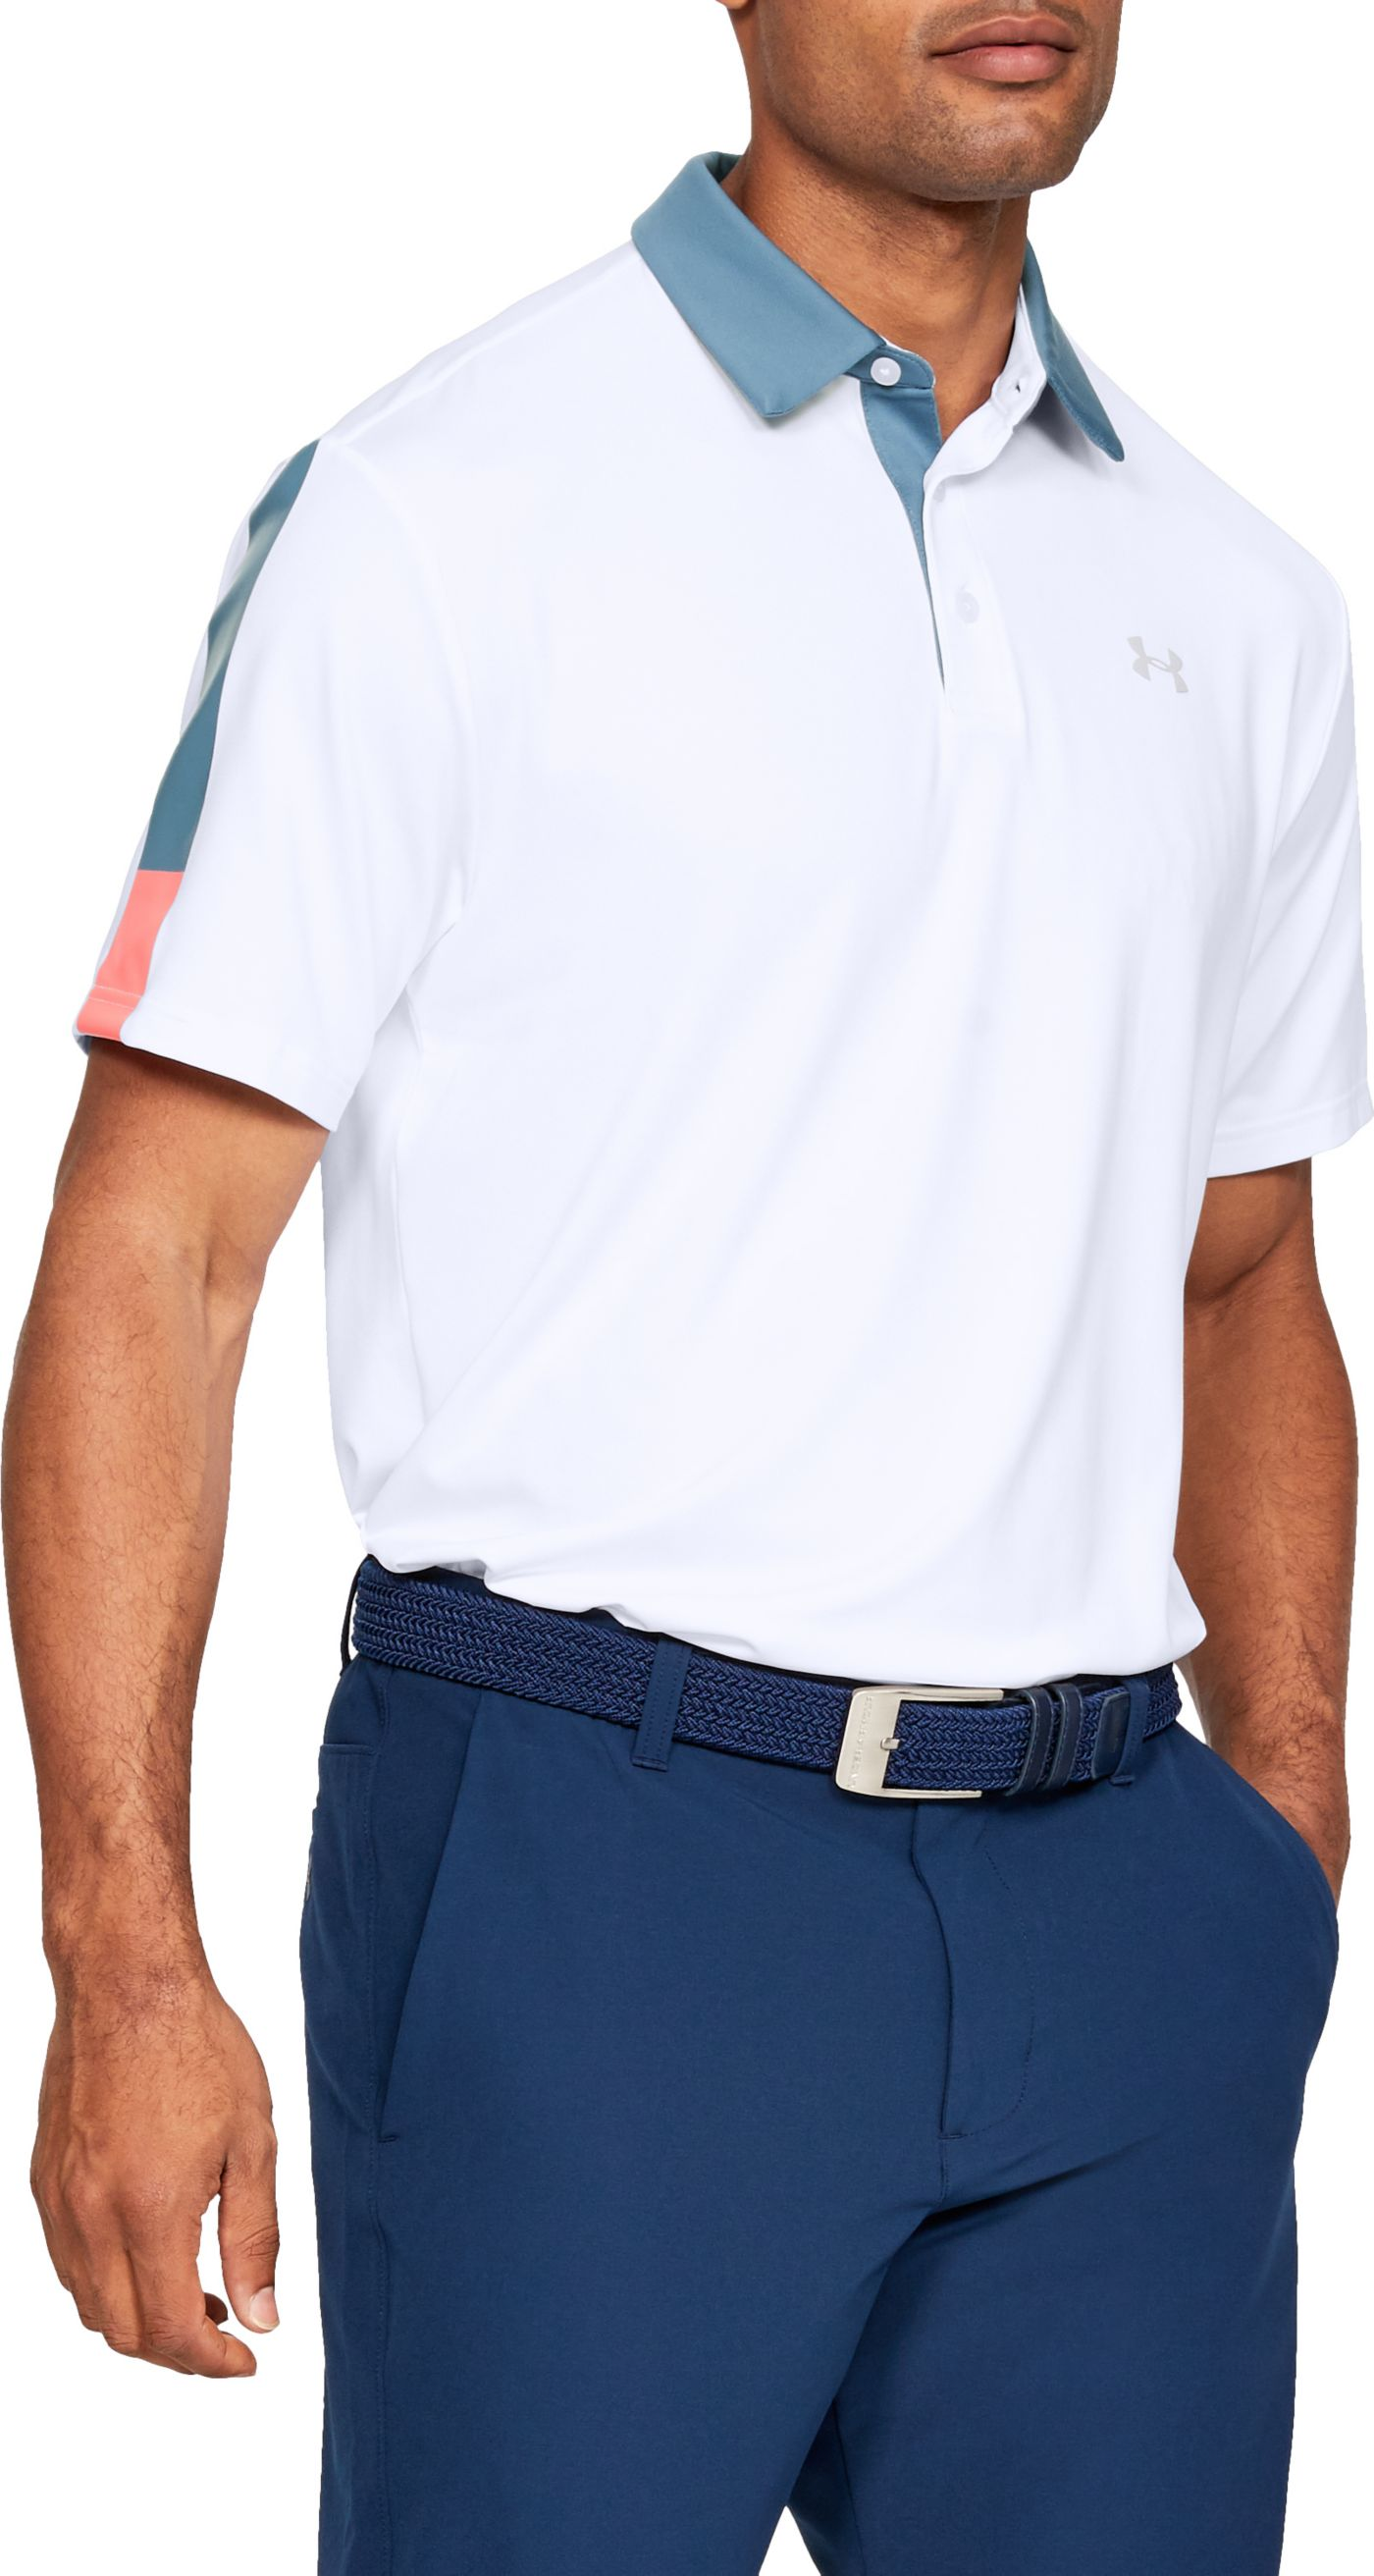 Under Armour Men's Playoff 2.0 Wedge Graphic Golf Polo